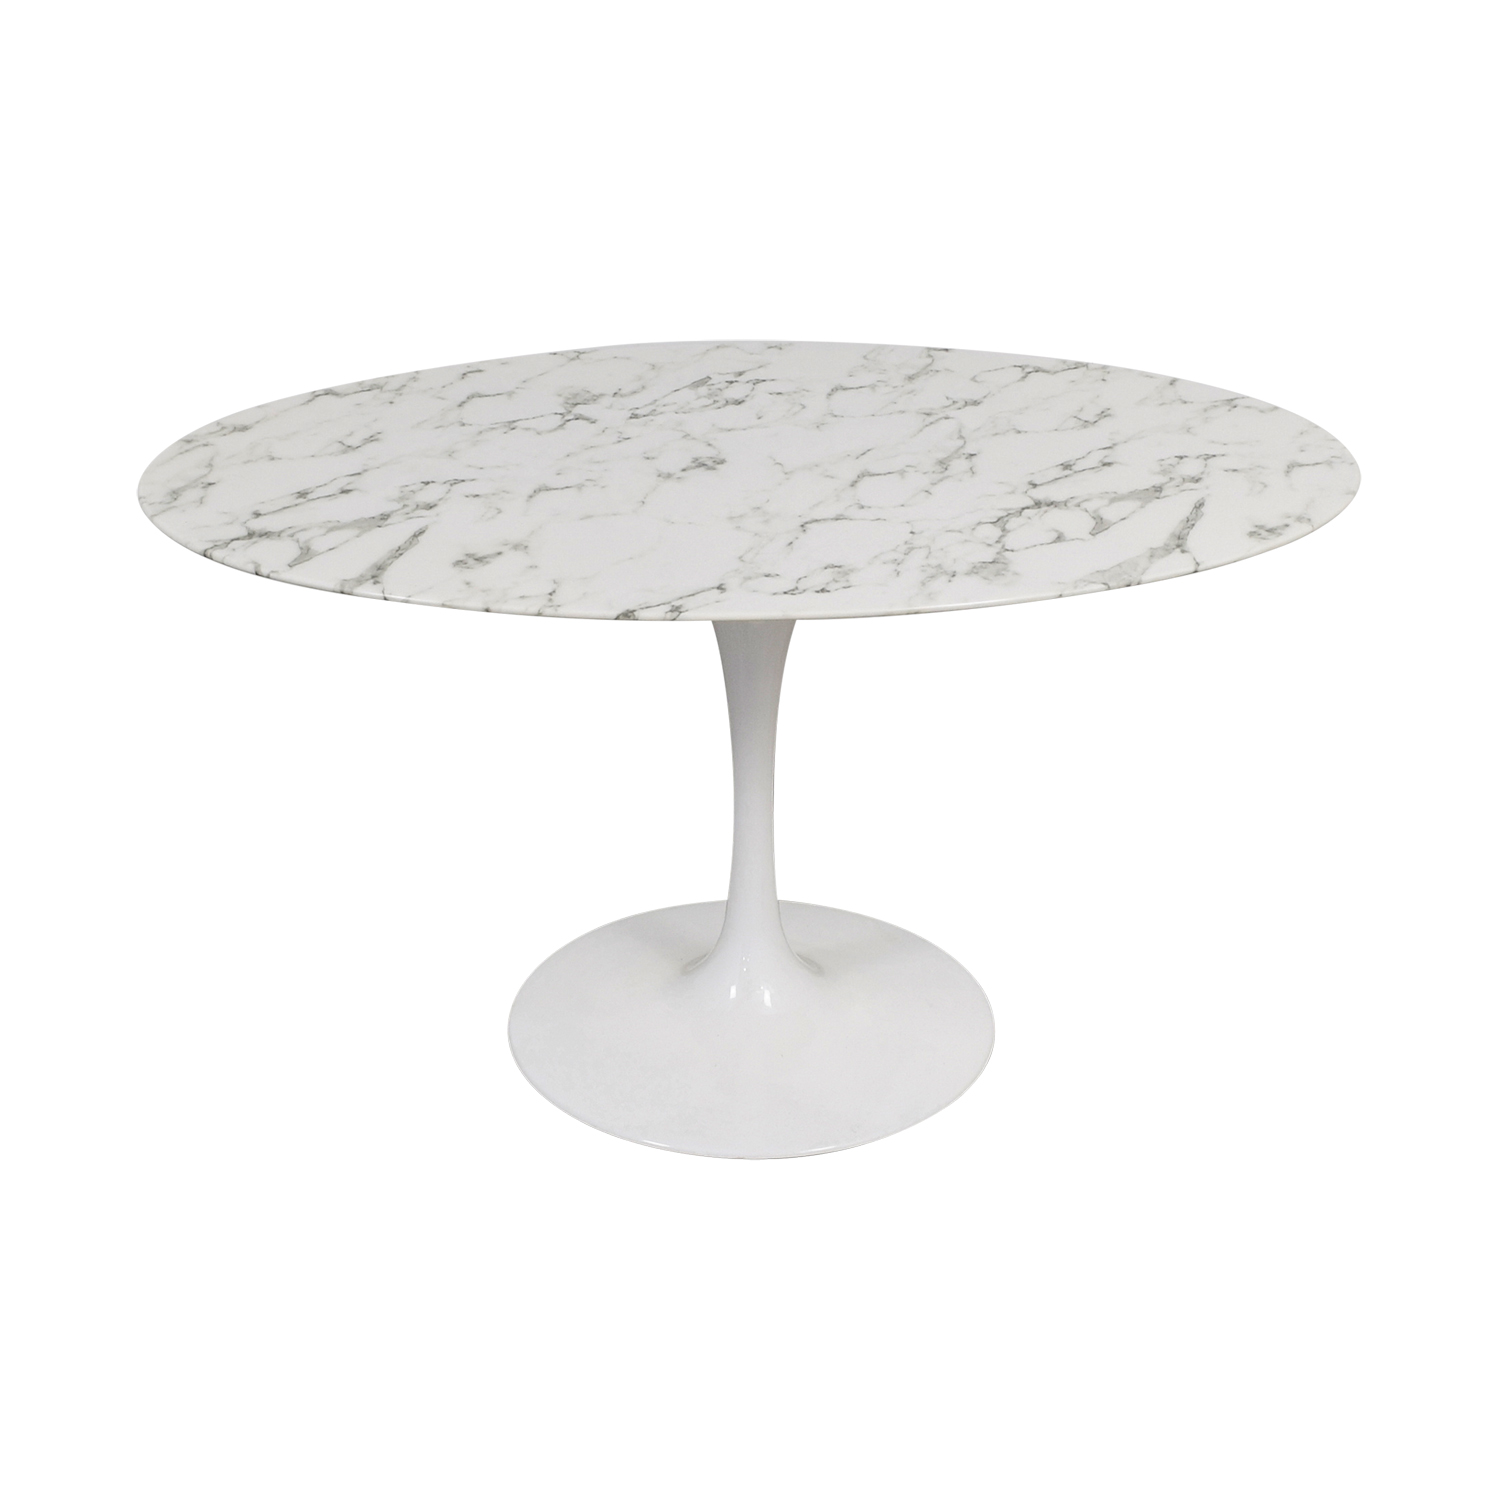 Lippa Lippa Oval White Tulip Table dimensions